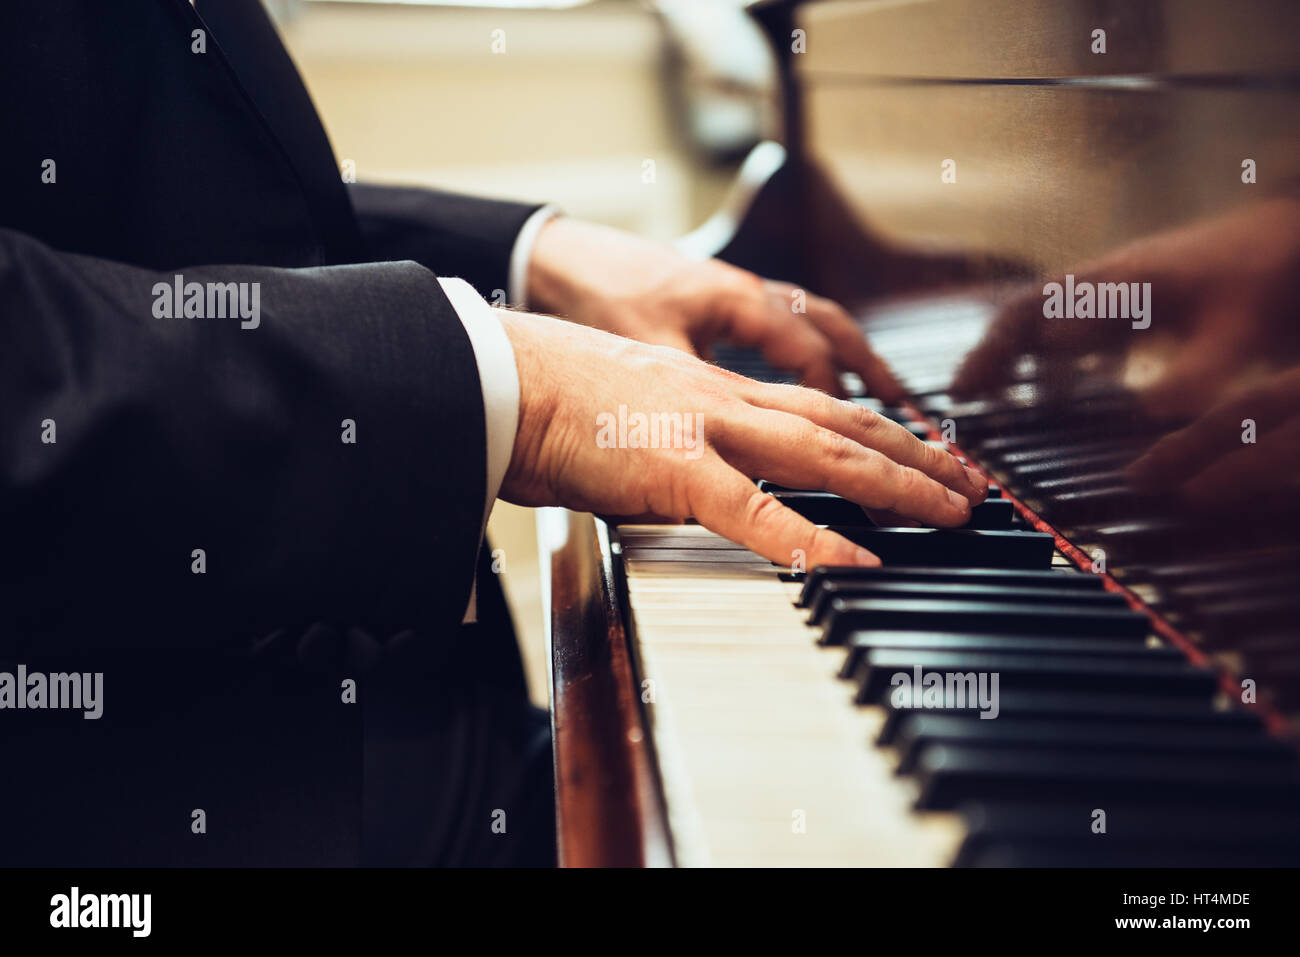 Playing classic piano. Professional musician pianist hands on piano keys. - Stock Image